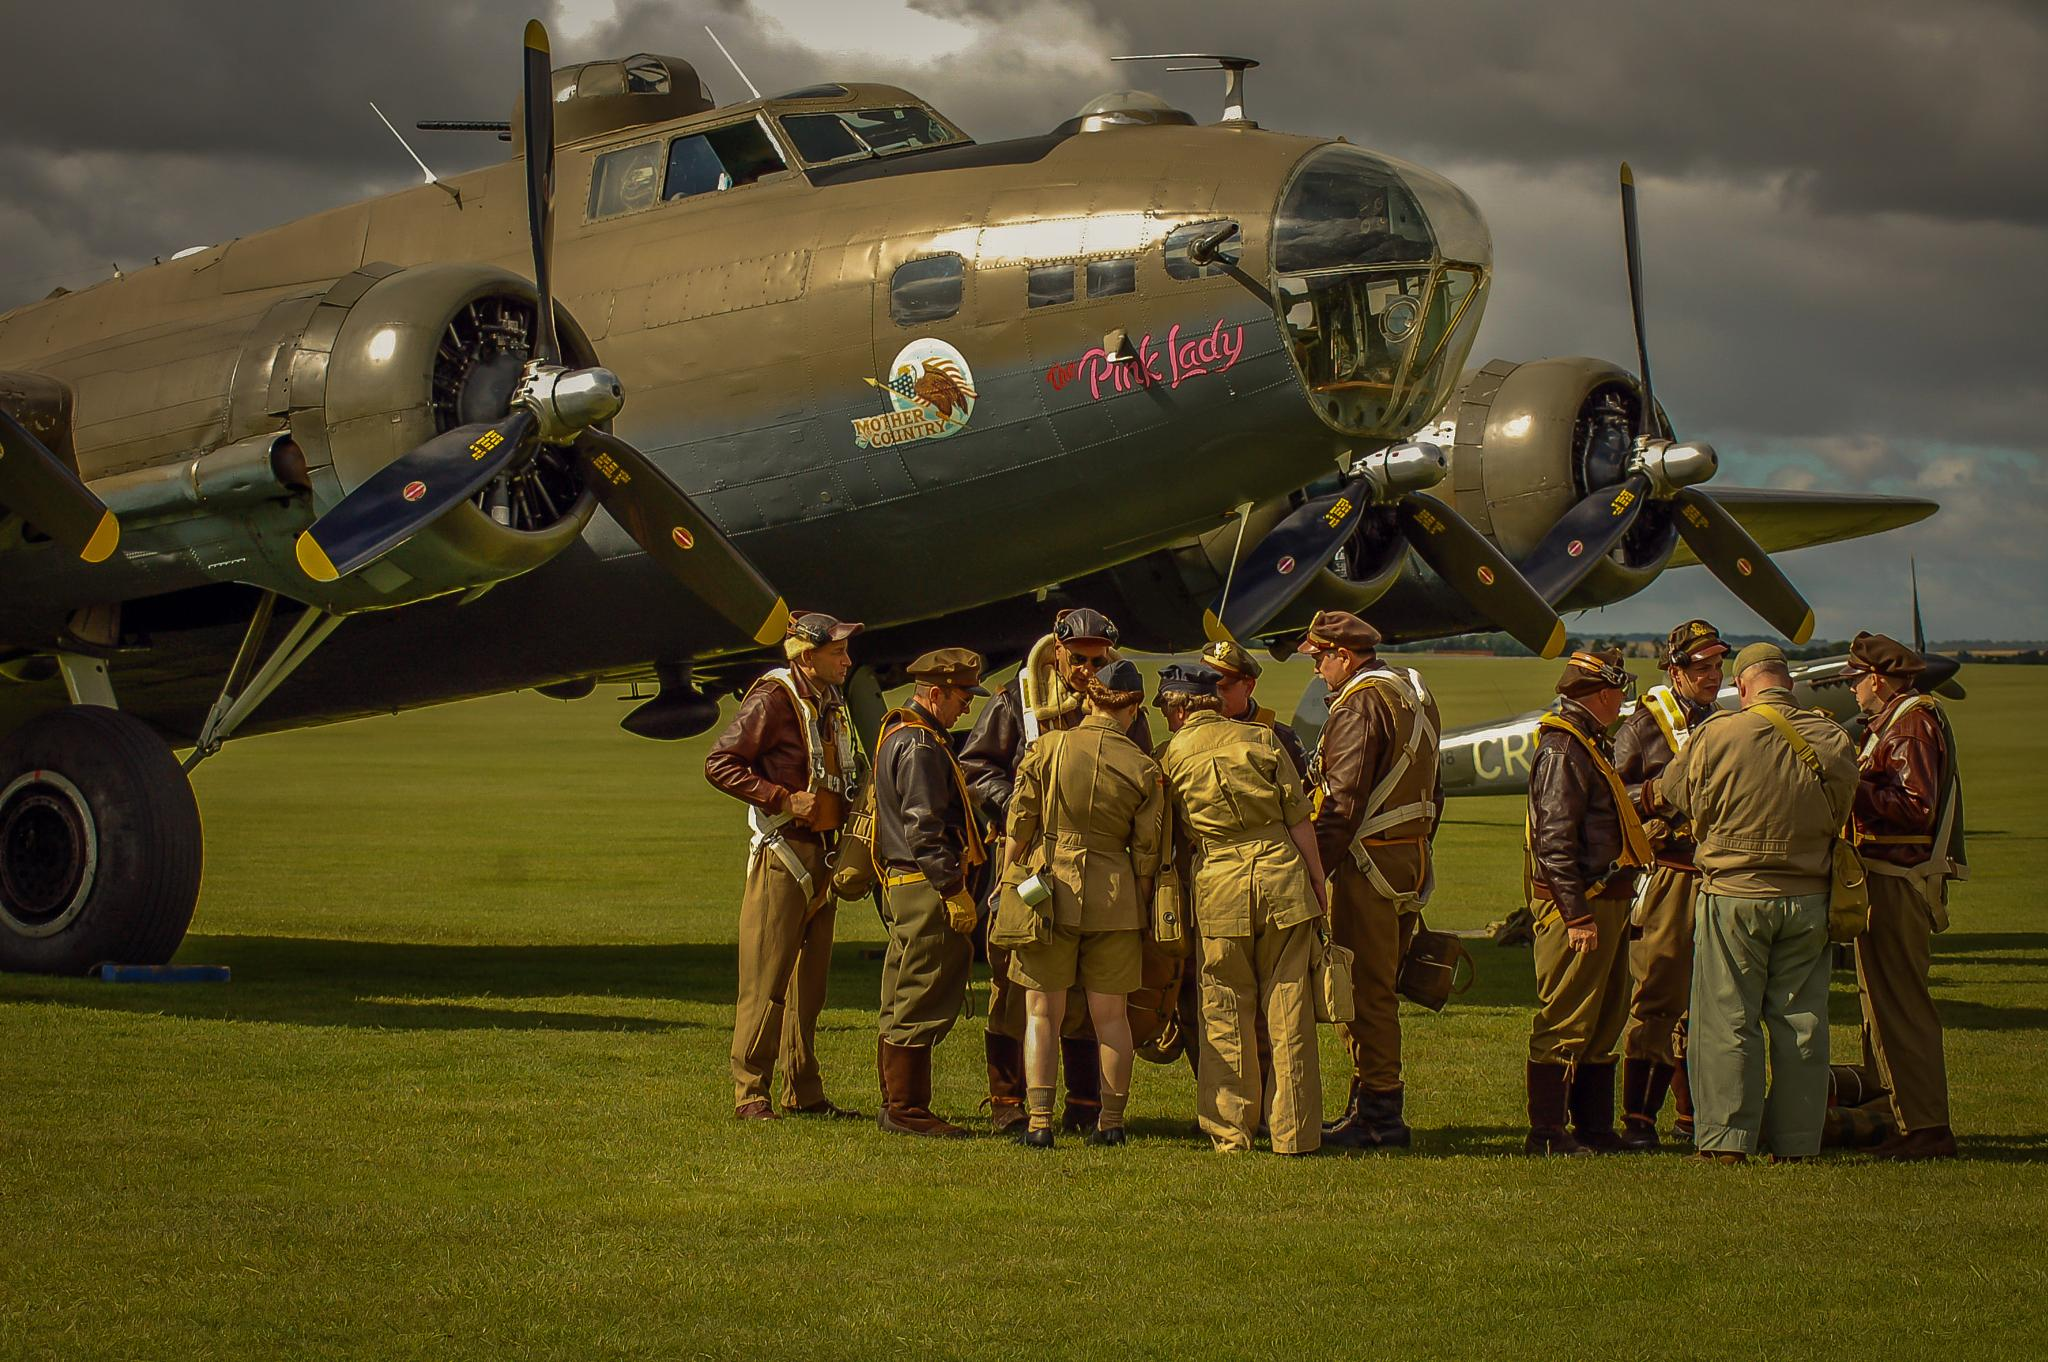 Reenactors with  the Pink Lady by Norman3384